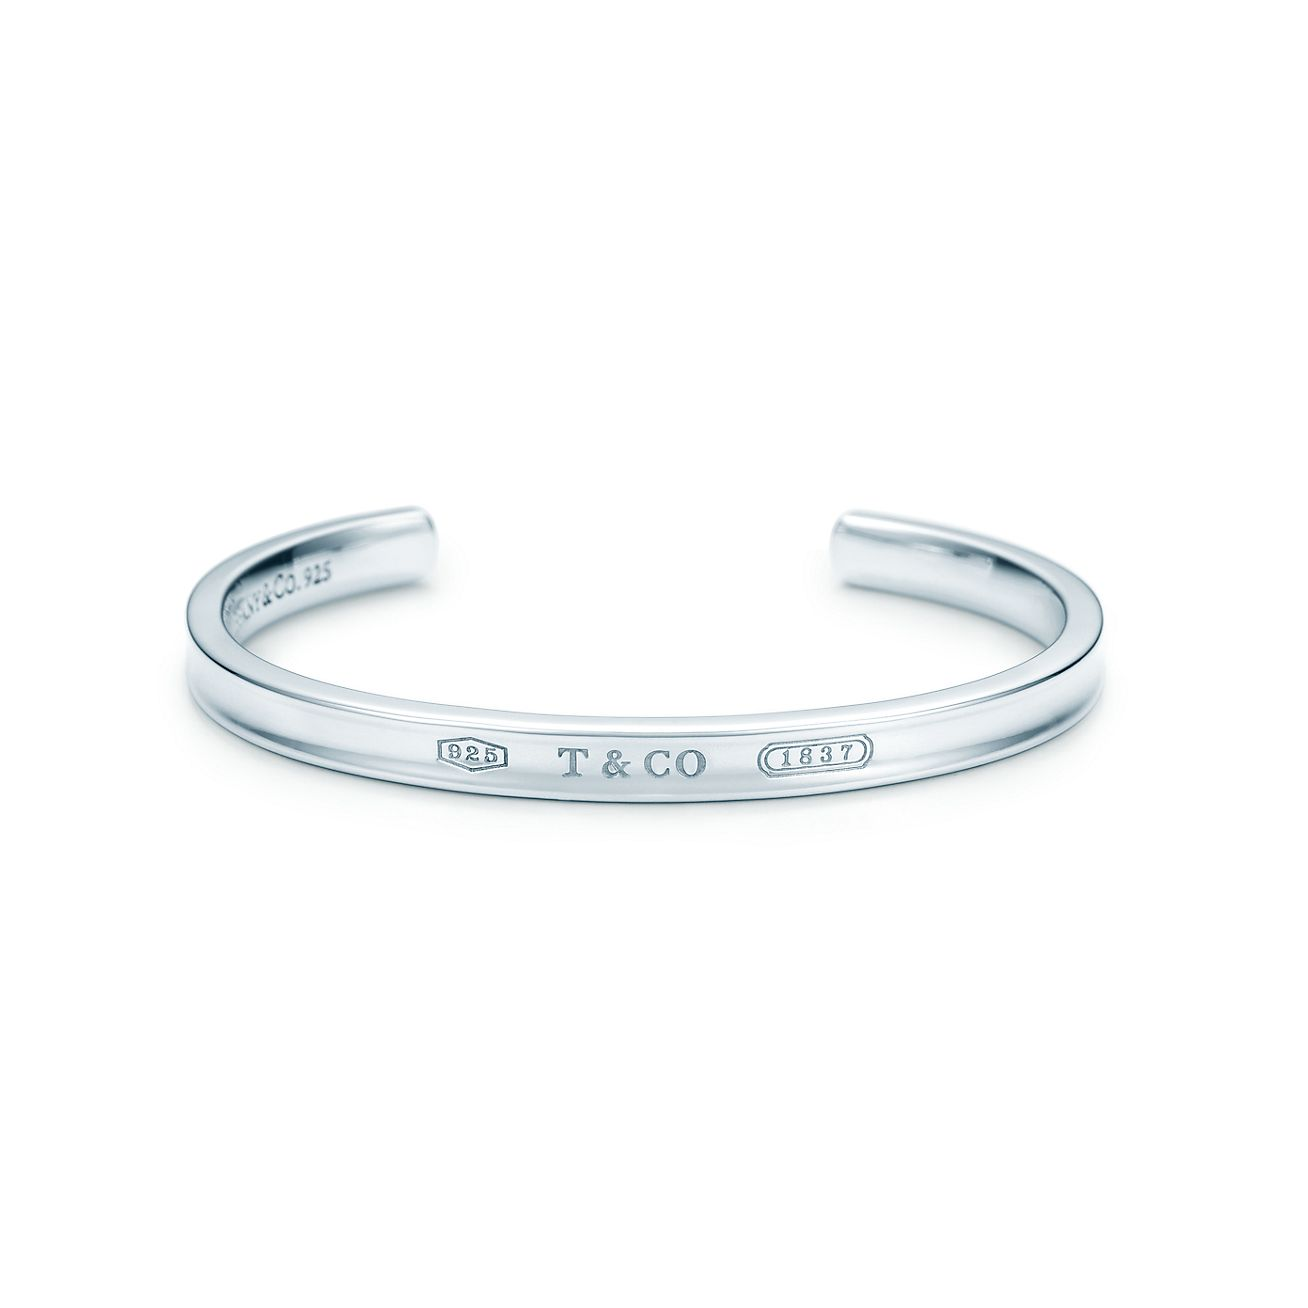 bangles family sparkles forever energy positive energ quotes bracelet stainless bangle cuff steel sexy open products